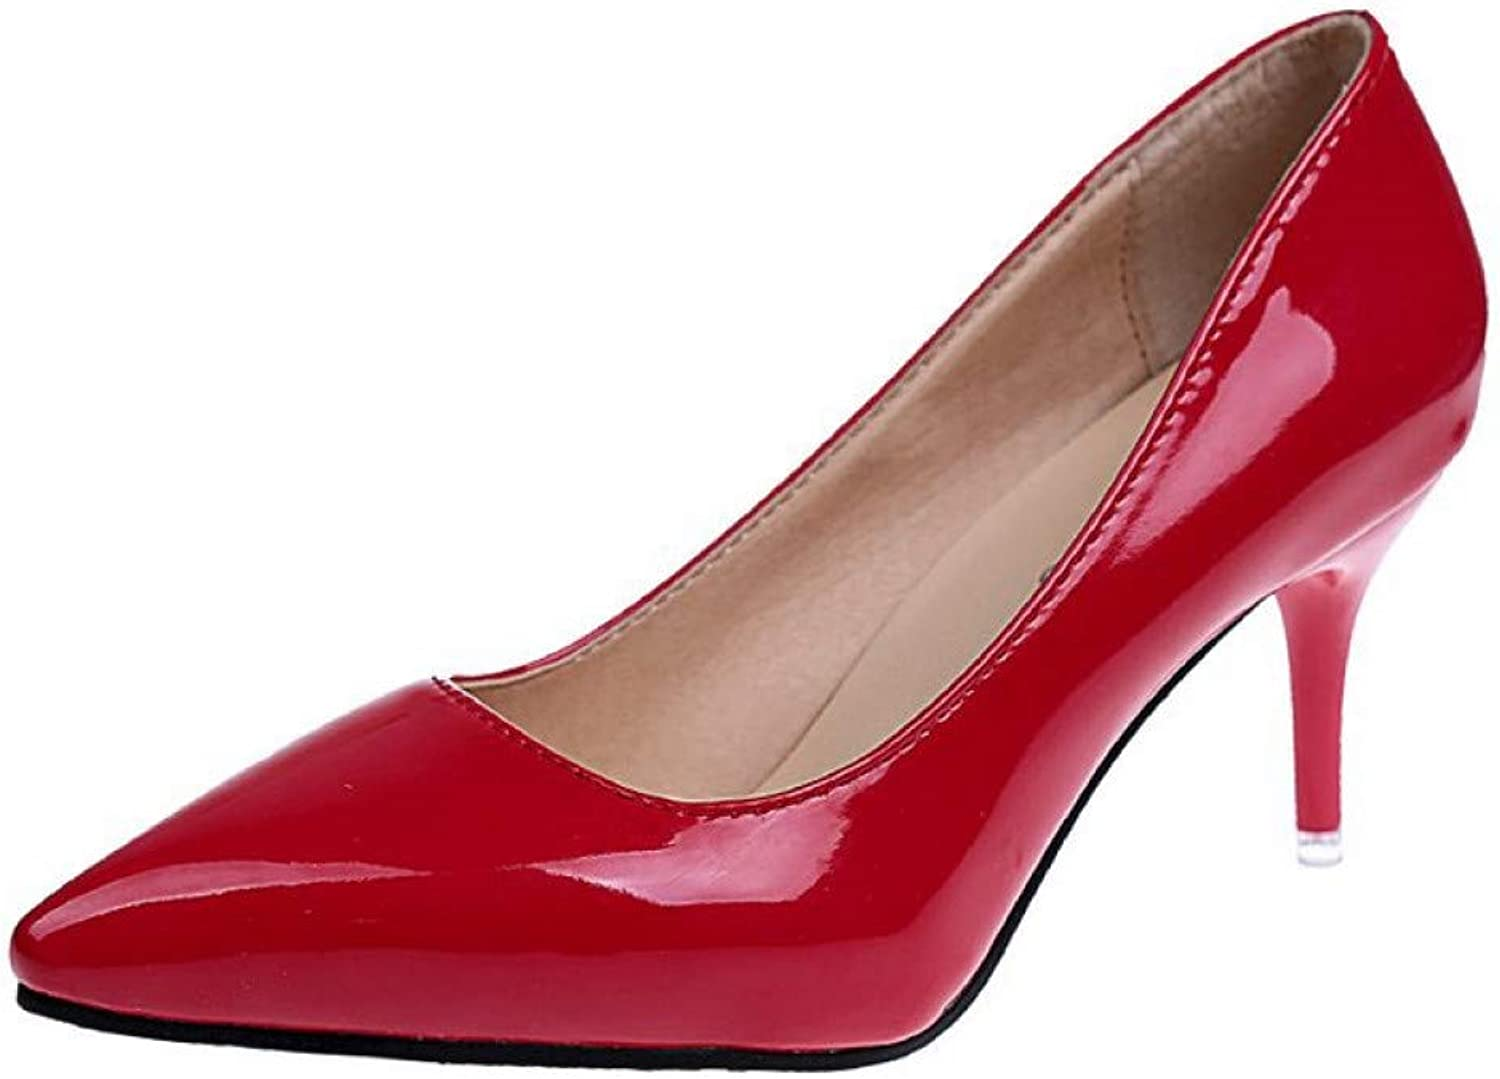 UKJSNHH igh Heels Women shoes Red Pointed Toe Pumps Patent Leather Dress shoes High Heels Boat shoes Wedding shoes